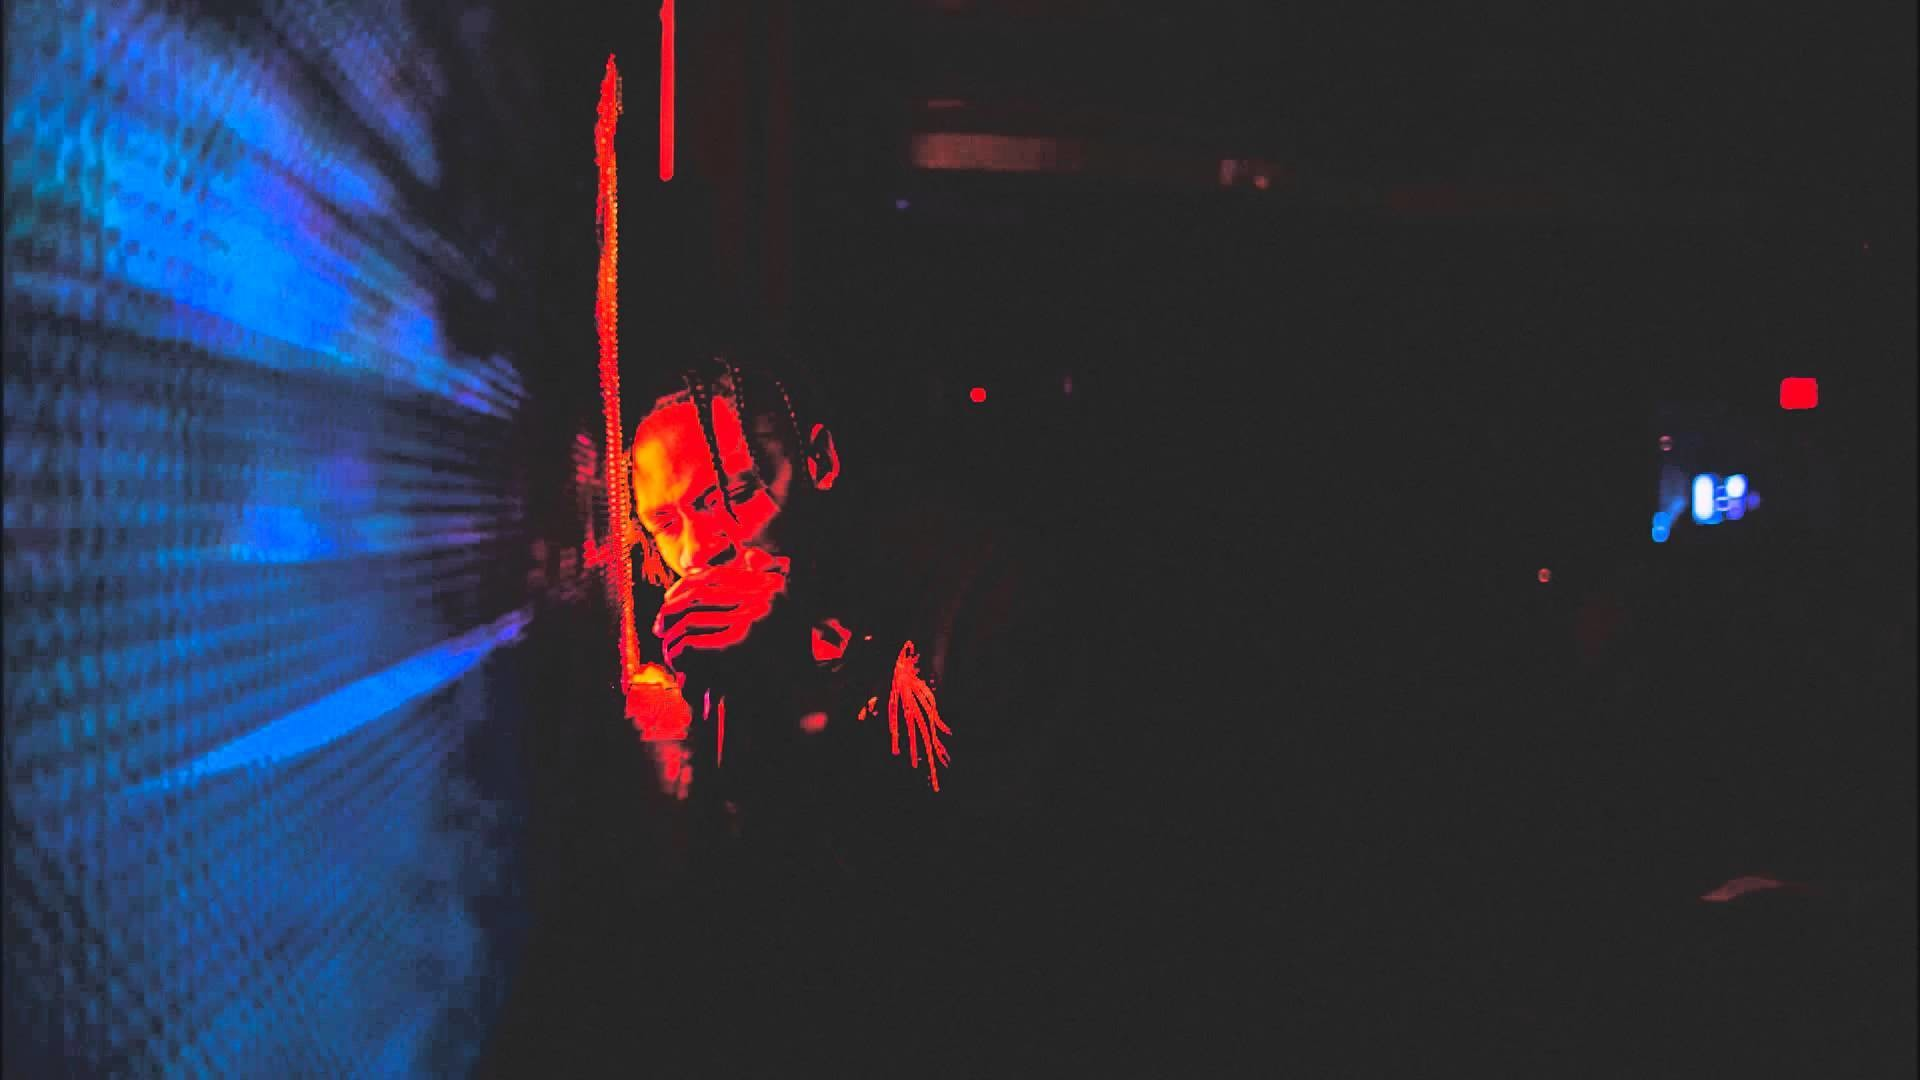 For Travi$ Scott, life is just one big circus. Under a full moon, La Flame  parades through abandoned circus grounds in his dark trippy visual.